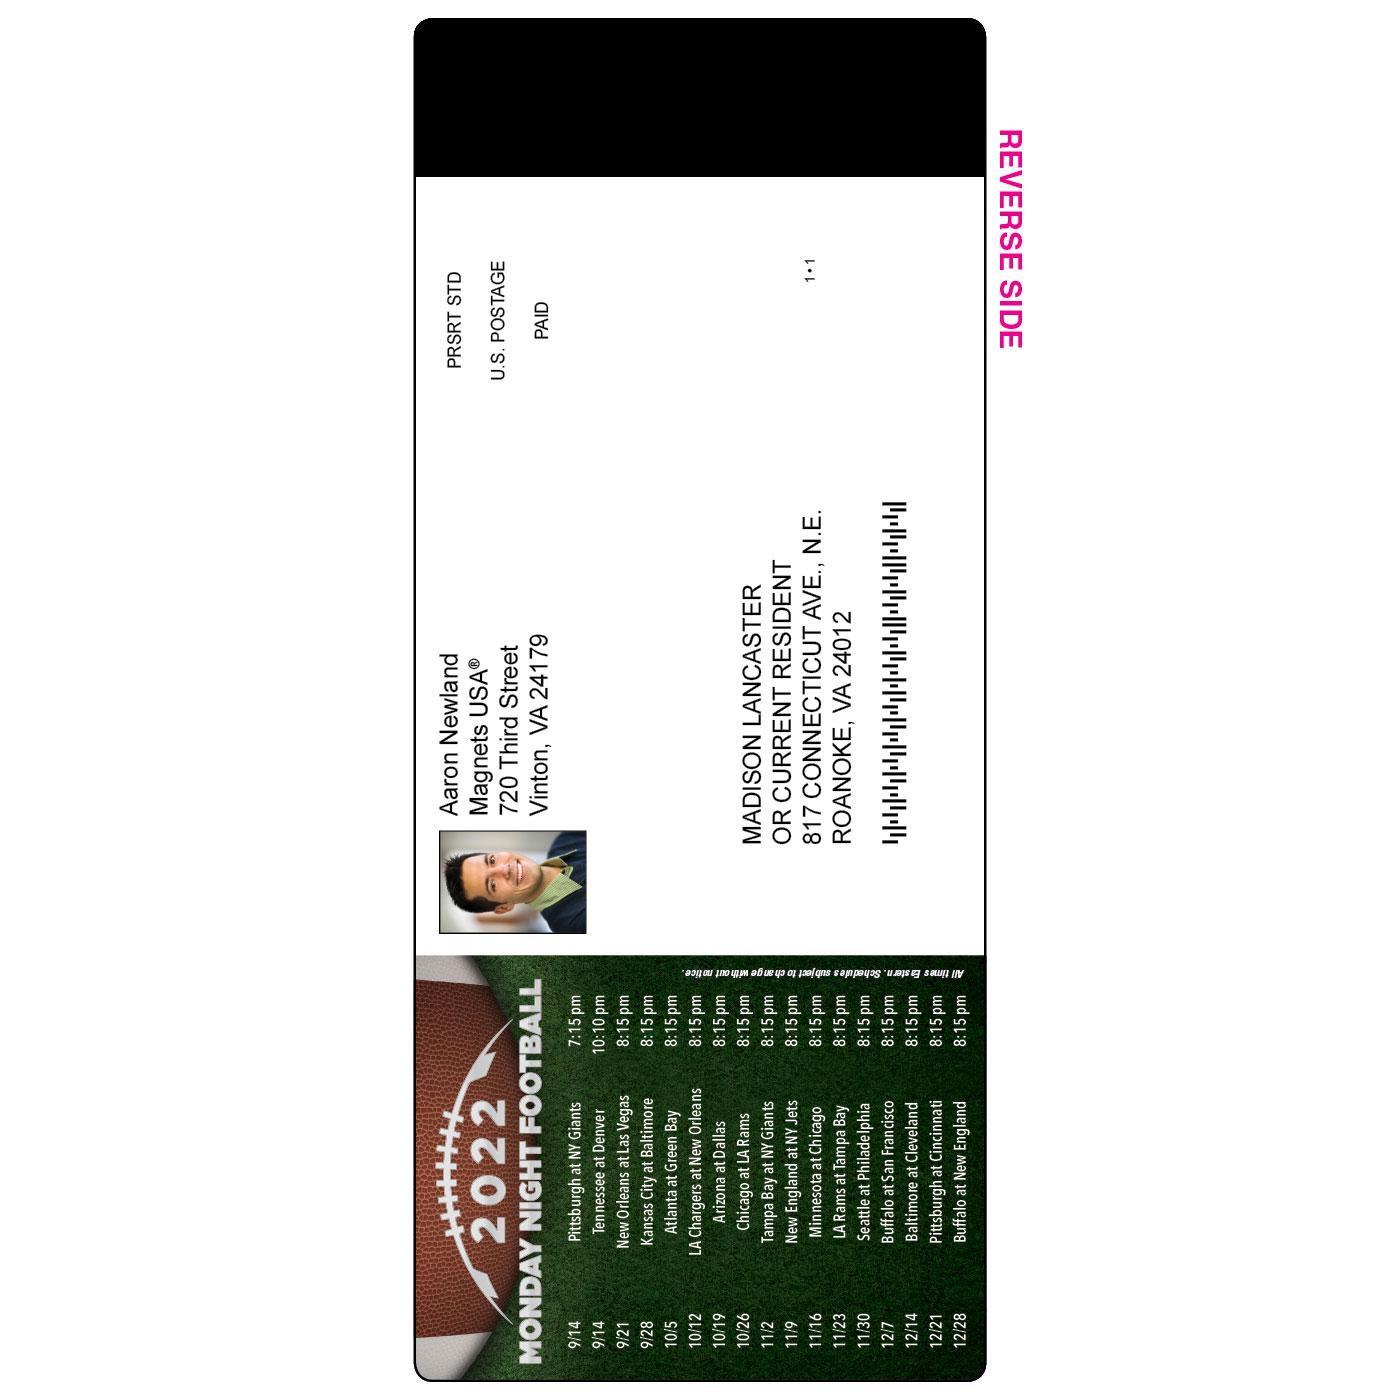 Magnetic Card Baseball Schedule